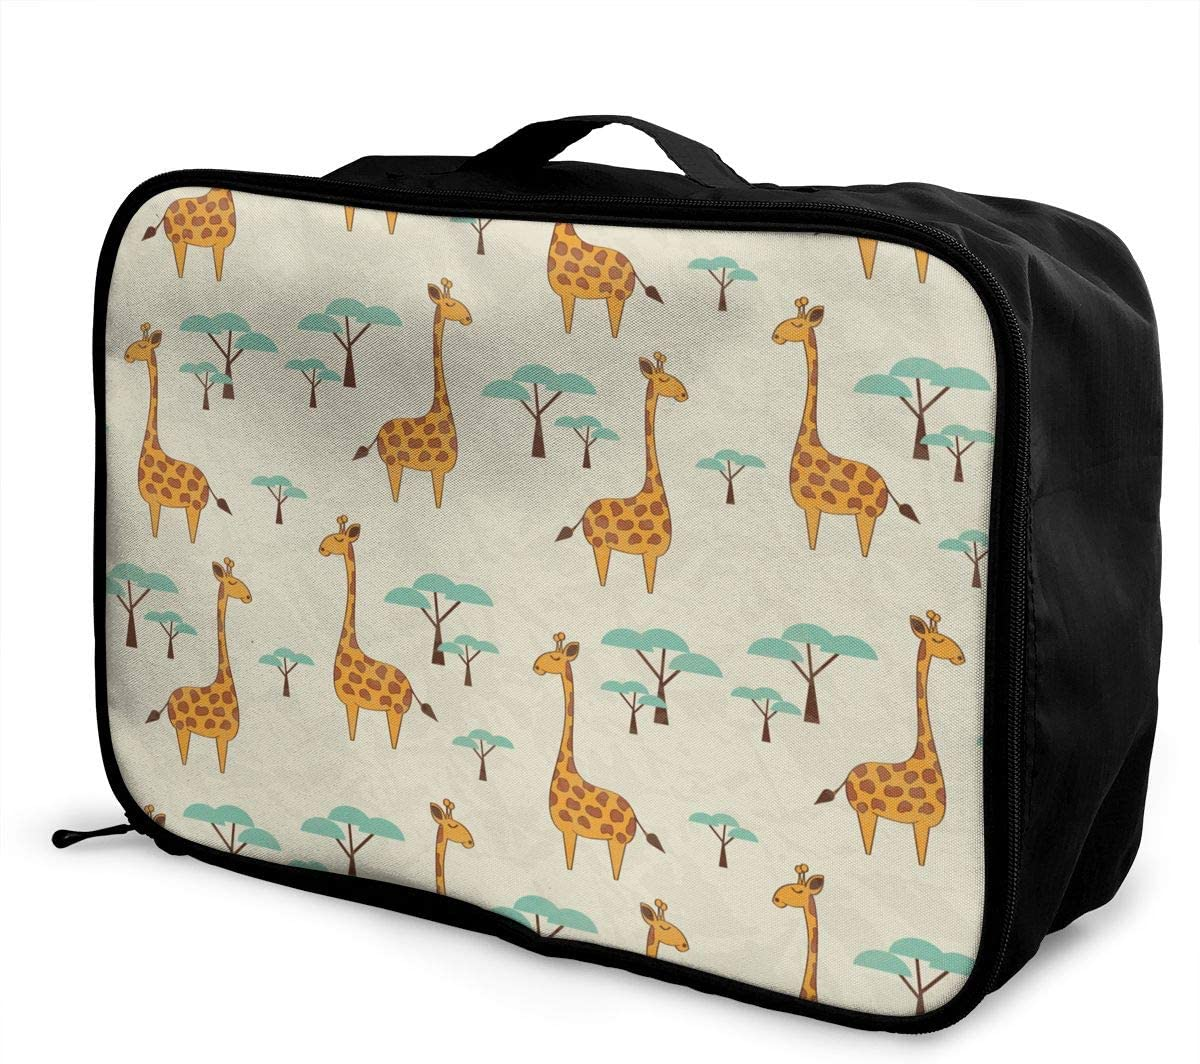 Cute Animal Giraffe Travel Carry-on Luggage Weekender Bag Overnight Tote Flight Duffel In Trolley Handle